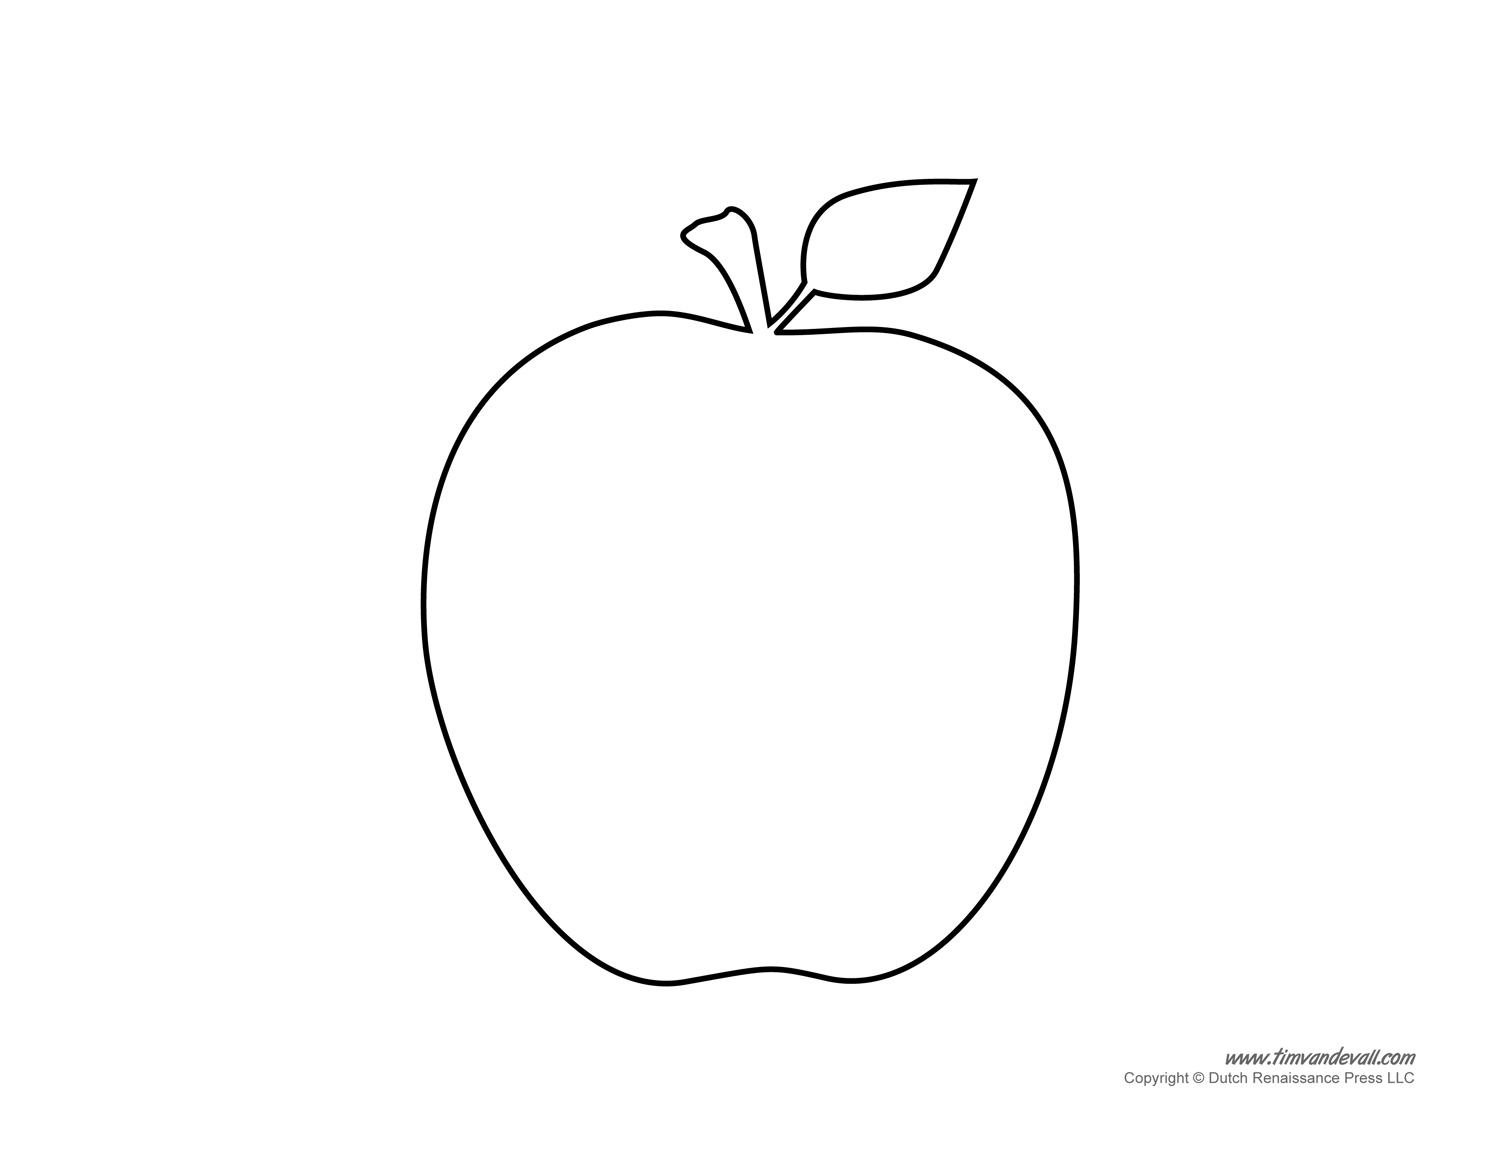 Free Apple Template, Download Free Clip Art, Free Clip Art.